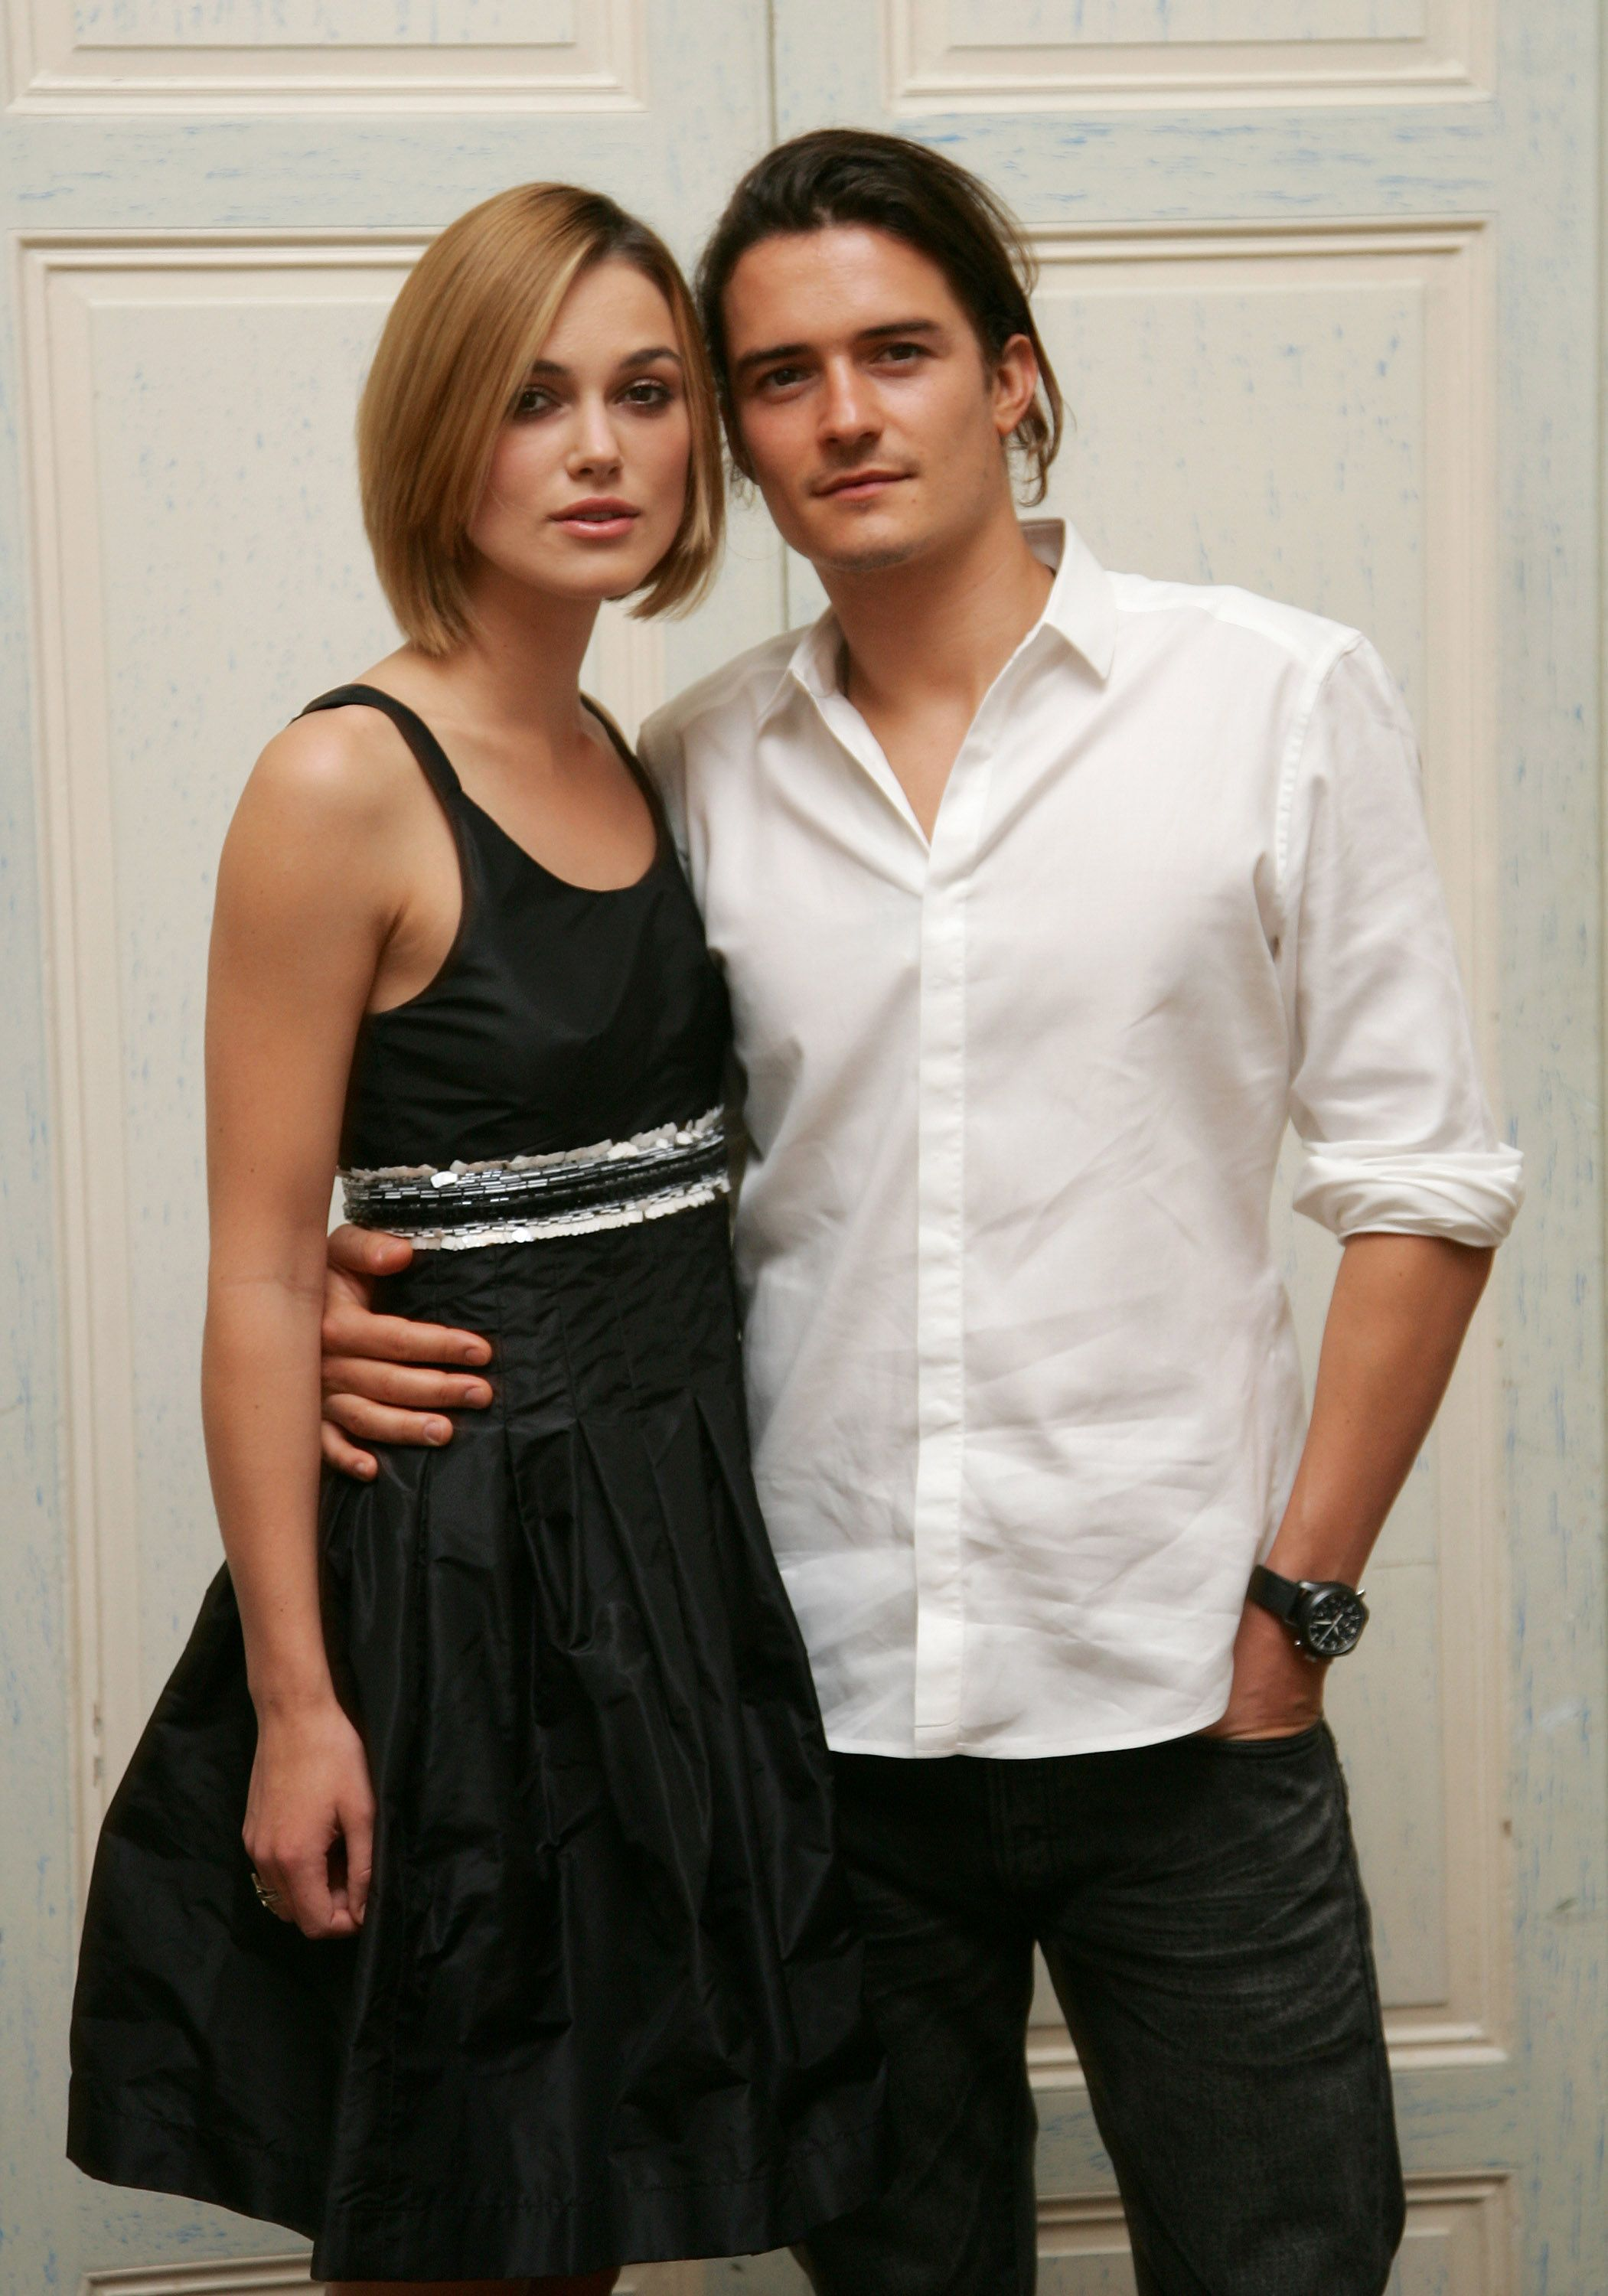 Keira Knightly and Orlando Bloom | Celebs | Pinterest